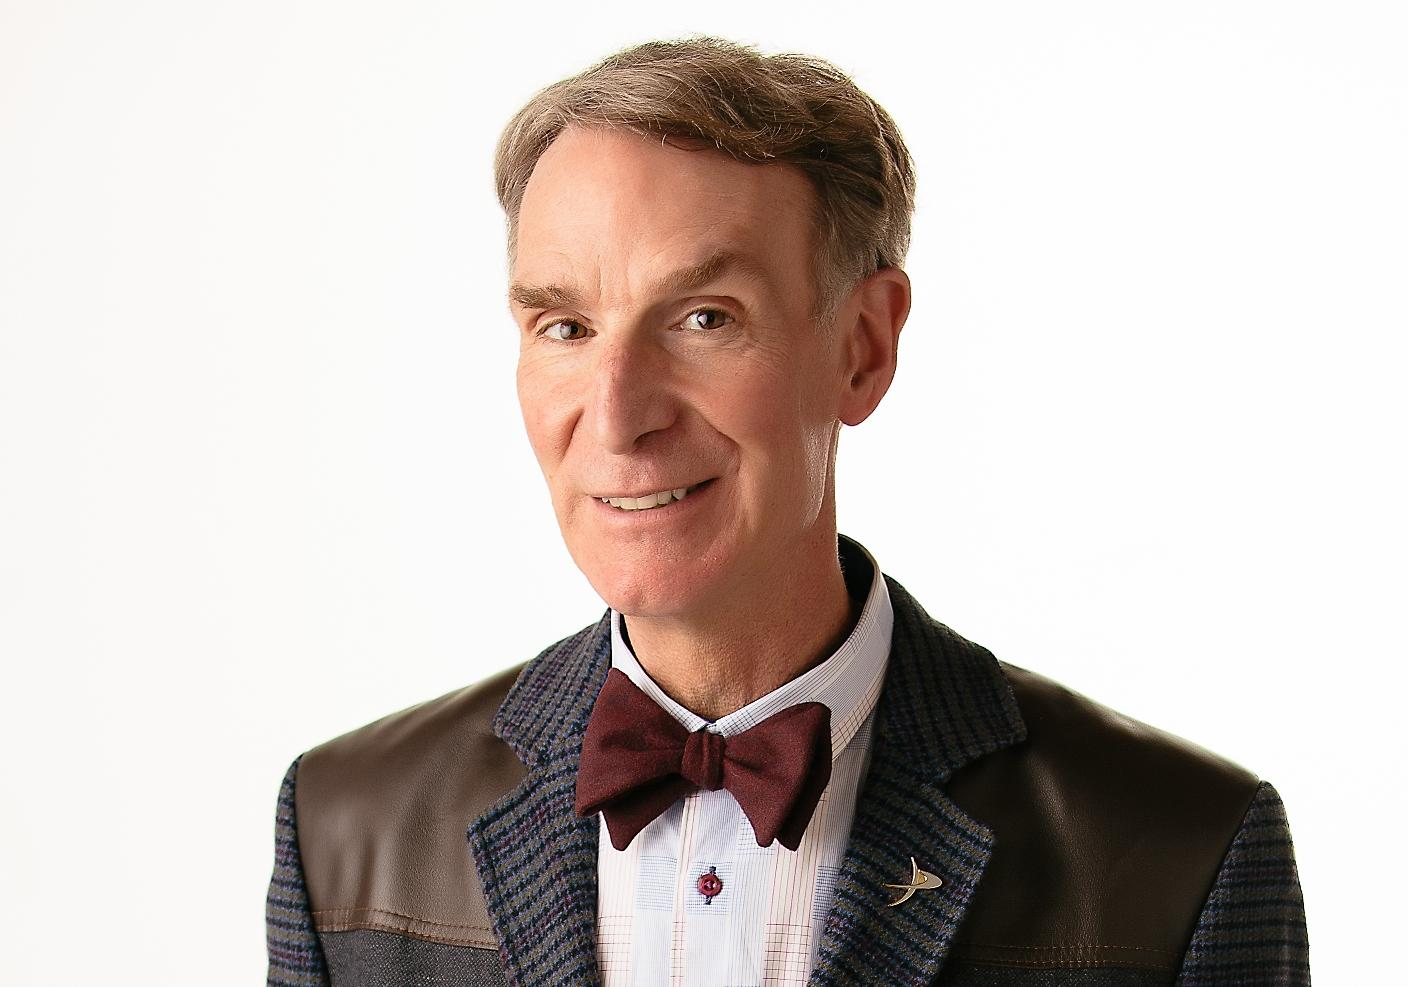 radioactive dating bill nye Bill nye the science guy  (or radiocarbon) has 6 protons and _____ neutrons and is radioactive 10 when an organism is living, the _____ between carbon14 and carbon12 stays the same 11 _____ are symbols that stand for sounds or ideas, similar to an alphabet  scientists can figure out the age of an object with radiocarbon dating 8.